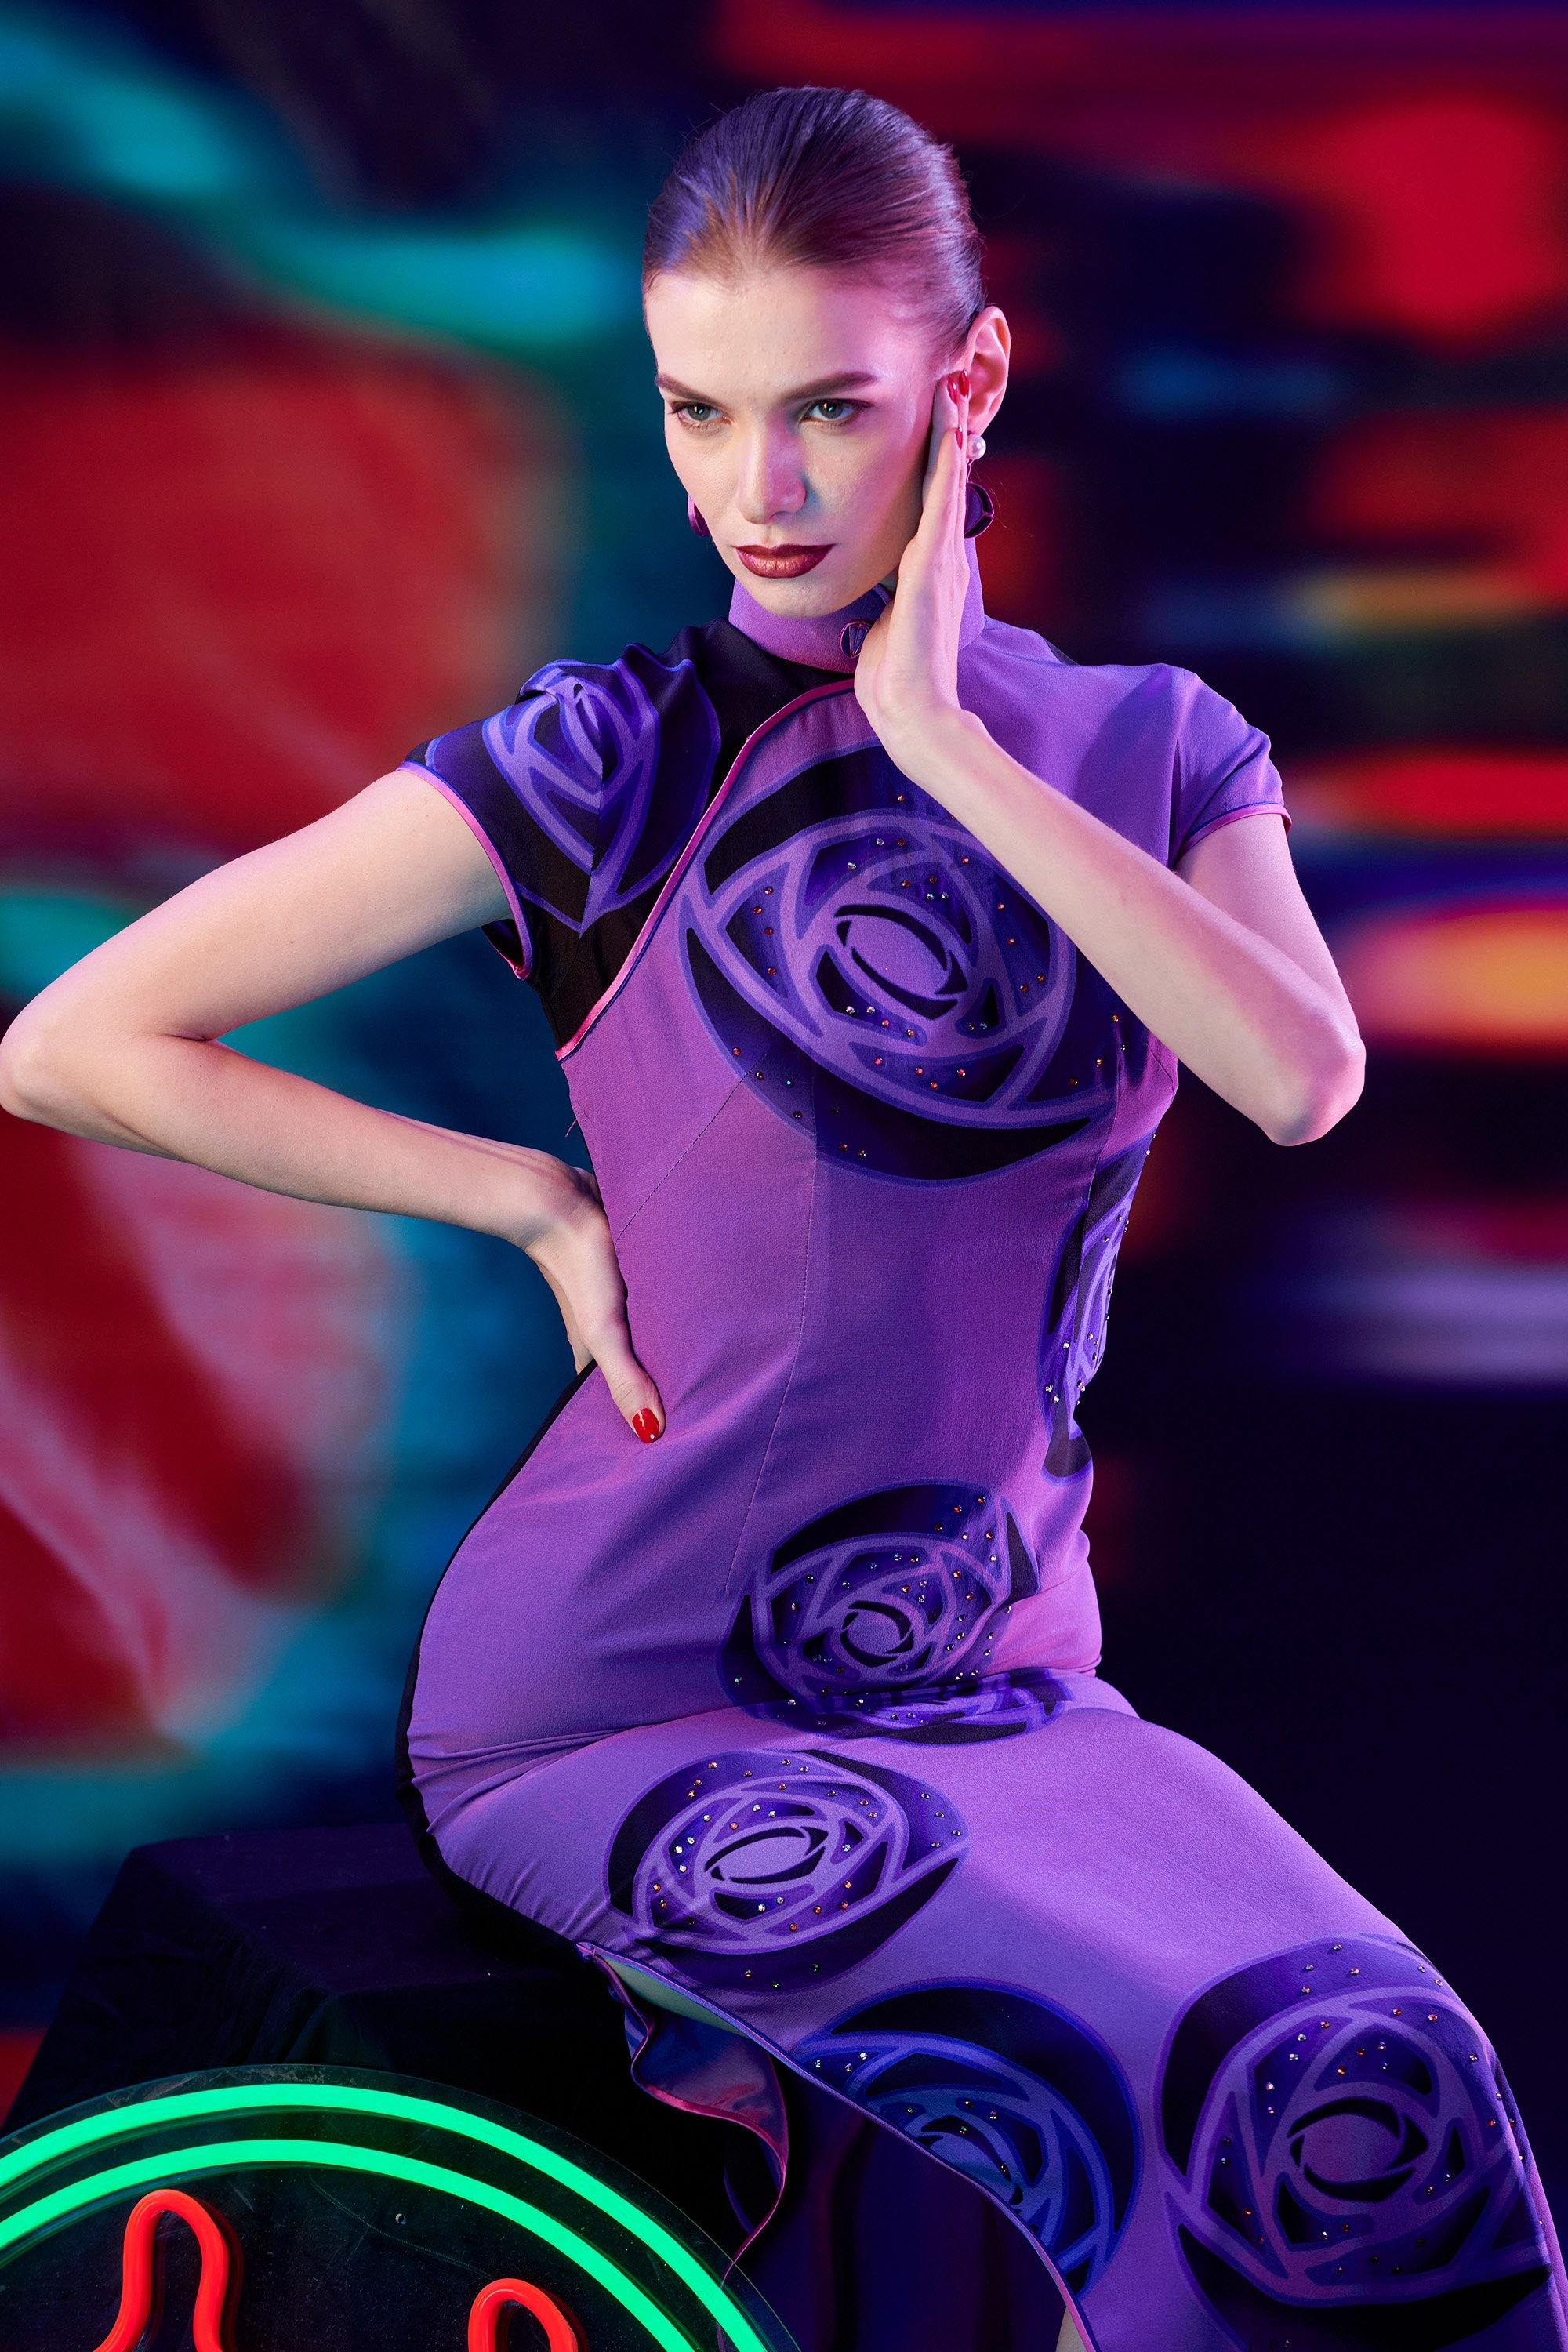 【ROSE】100% Silk Crystal Cheongsam (Cap Sleeve / Regular Fit) - THE SPARKLE COLLECTION by GERMAN POOL